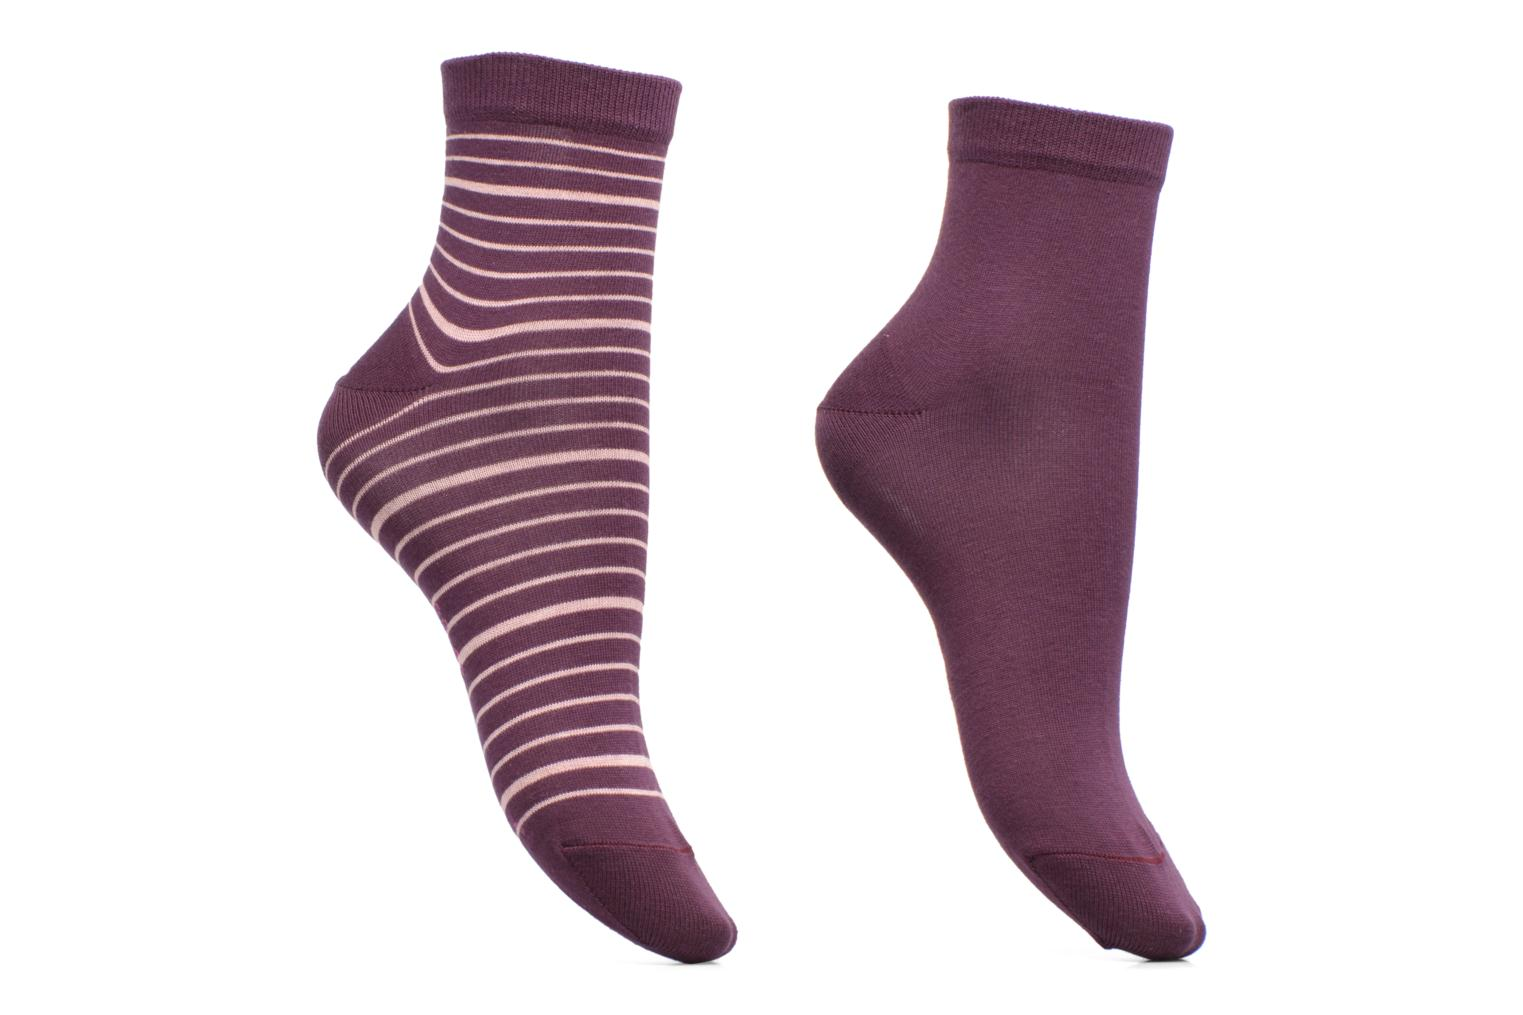 Chaussettes Stripe Mix Lot de 2 8722 plumberry